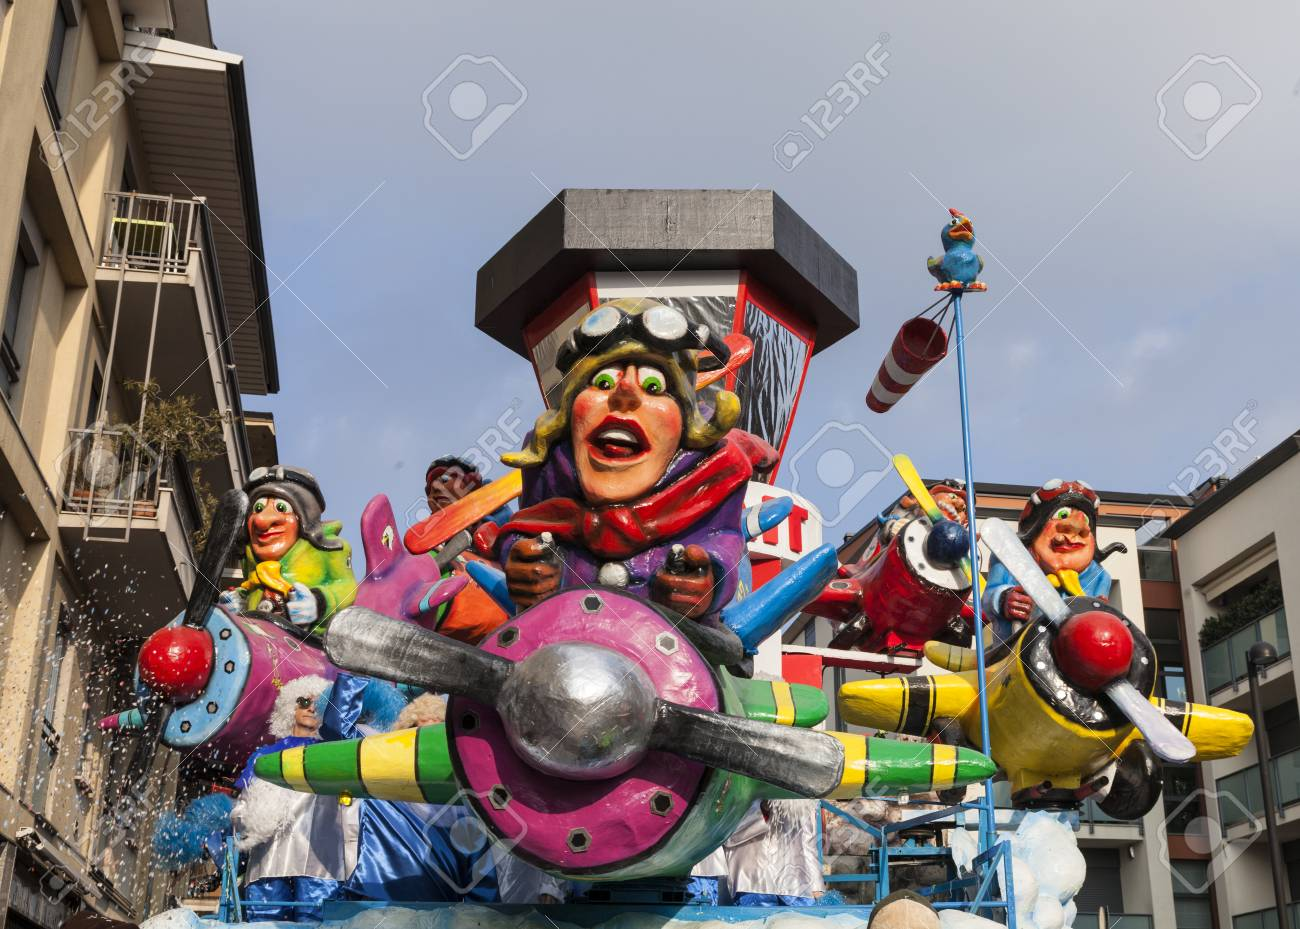 CANTU - ITALY - February 11, 2018: Allegorical float of traditional carnival. Buscait. Carnival of COMO LAKE - 97464552